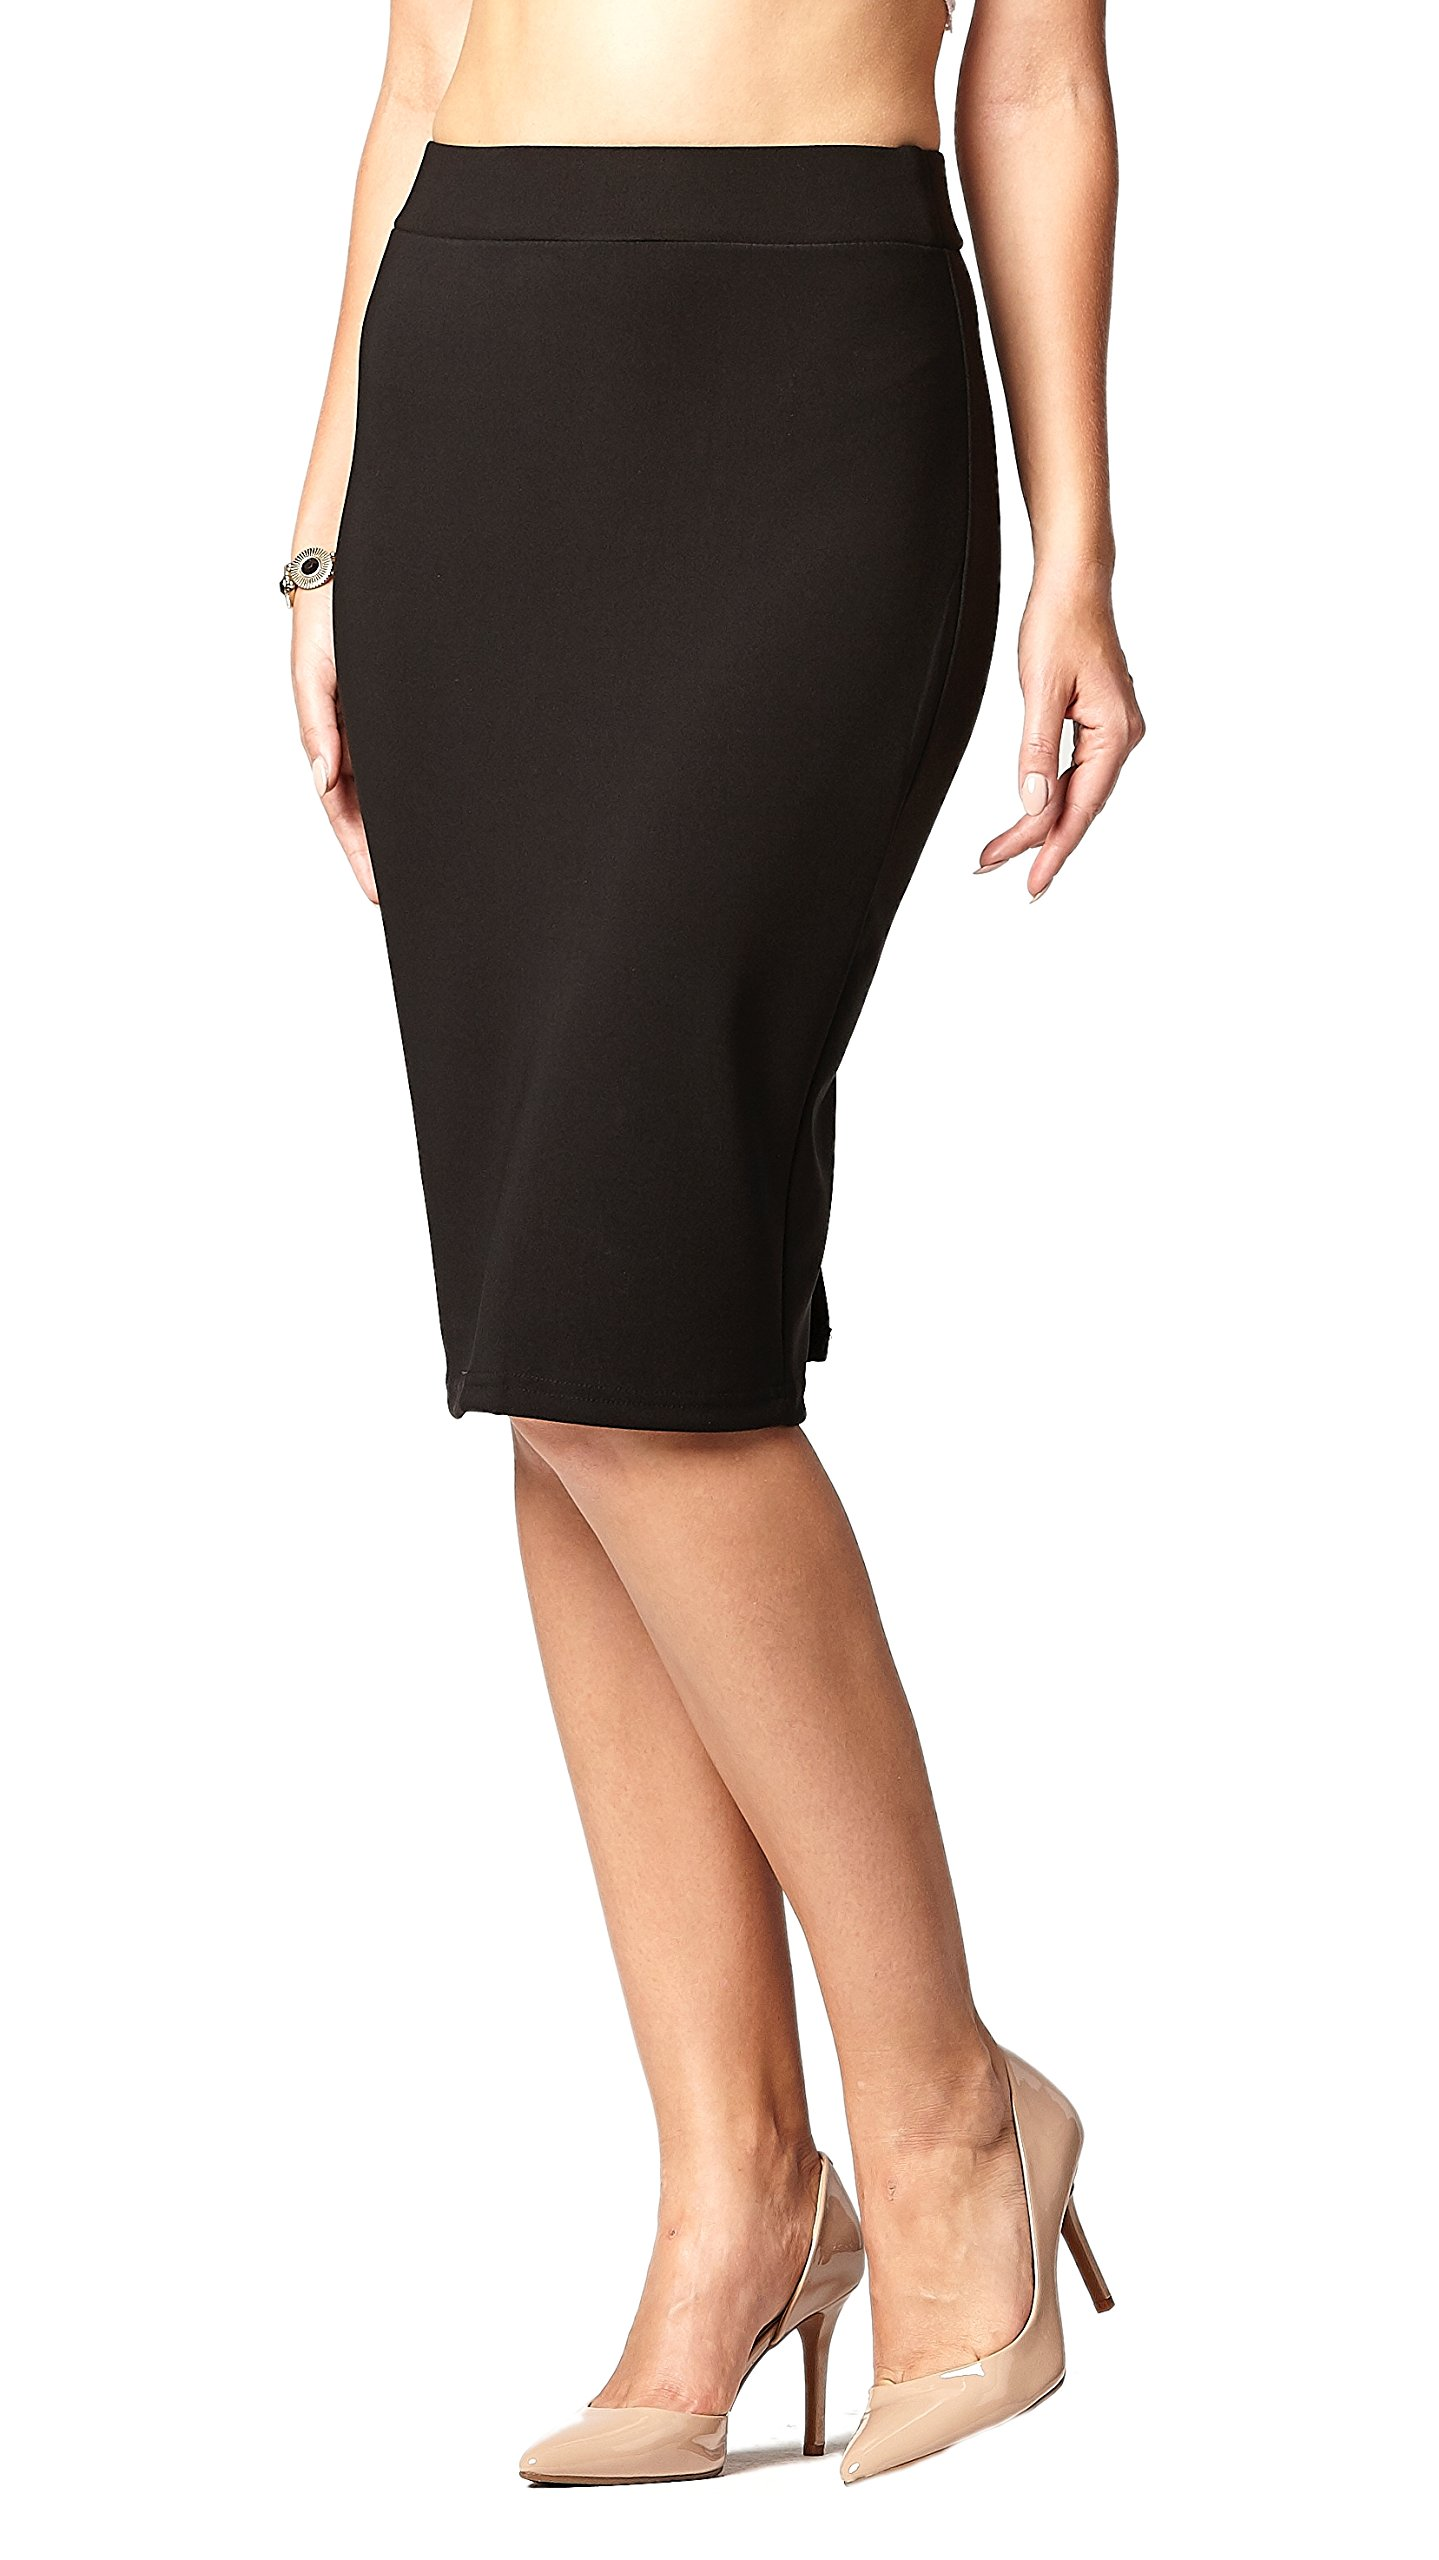 Conceited Premium High Waist Stretch Pencil Skirt - Bodycon - 10 Colors by (2X, Black)